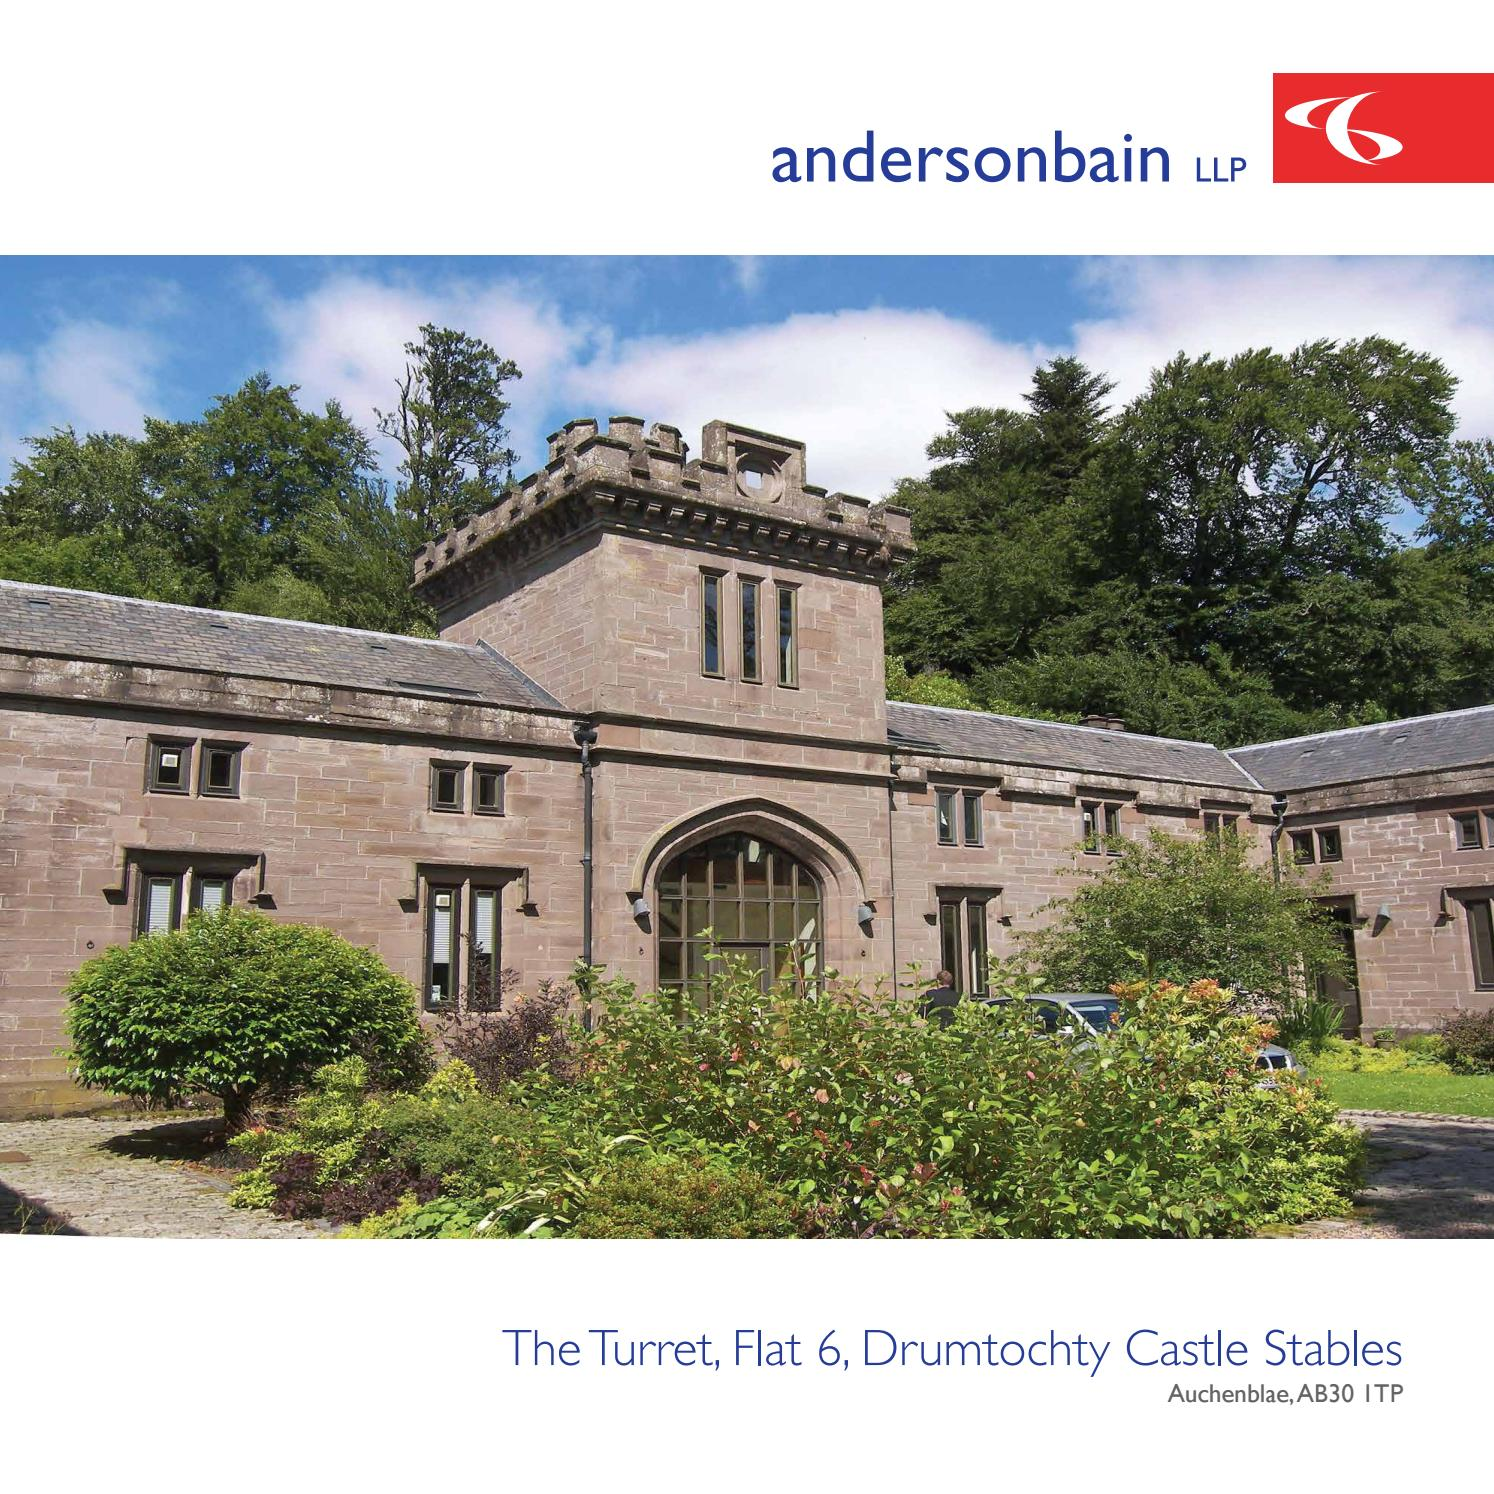 Andersonbain • The Turret, Flat 6, Drumtochty Castle Stables